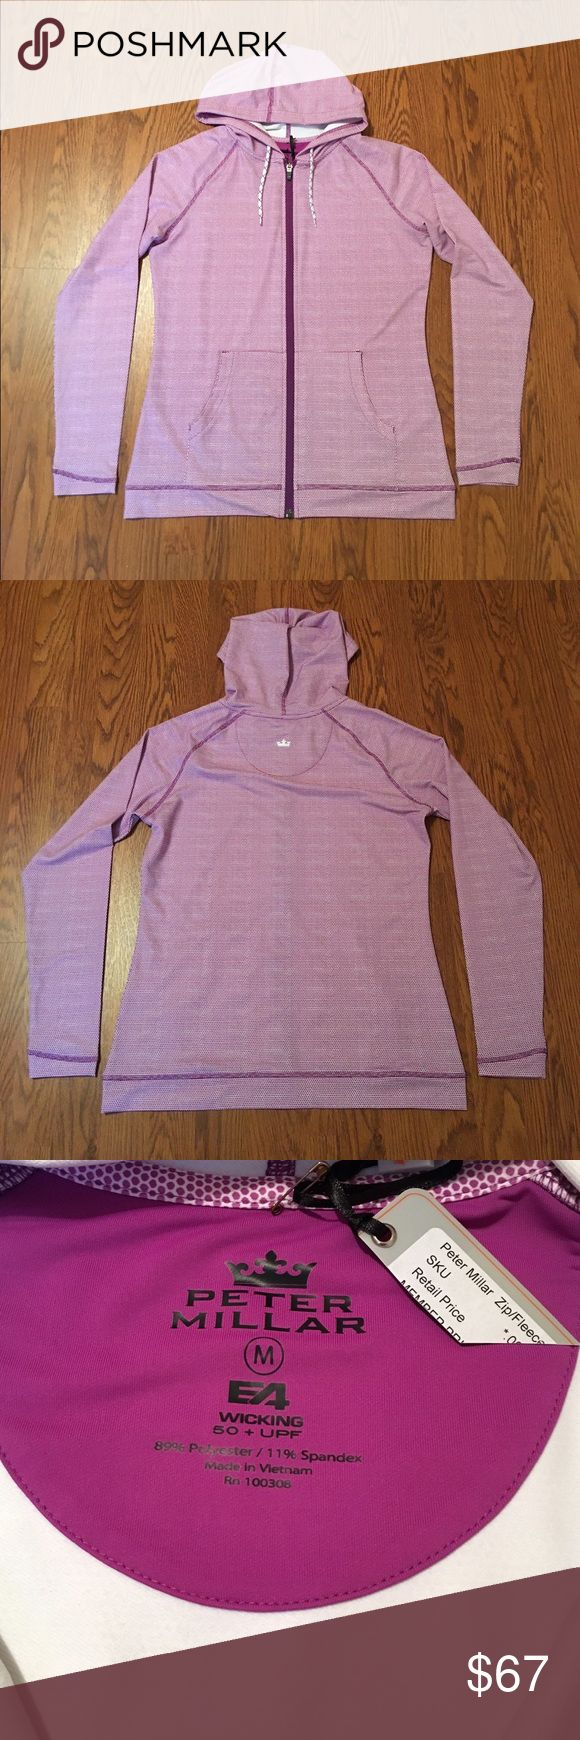 NWT Peter Millar E4 Performance Zip-Up hoodie Brand new purple polka-dot pattern Peter Millar E4 Performance full-zip up hoodie. Size M Peter Millar Tops Sweatshirts & Hoodies